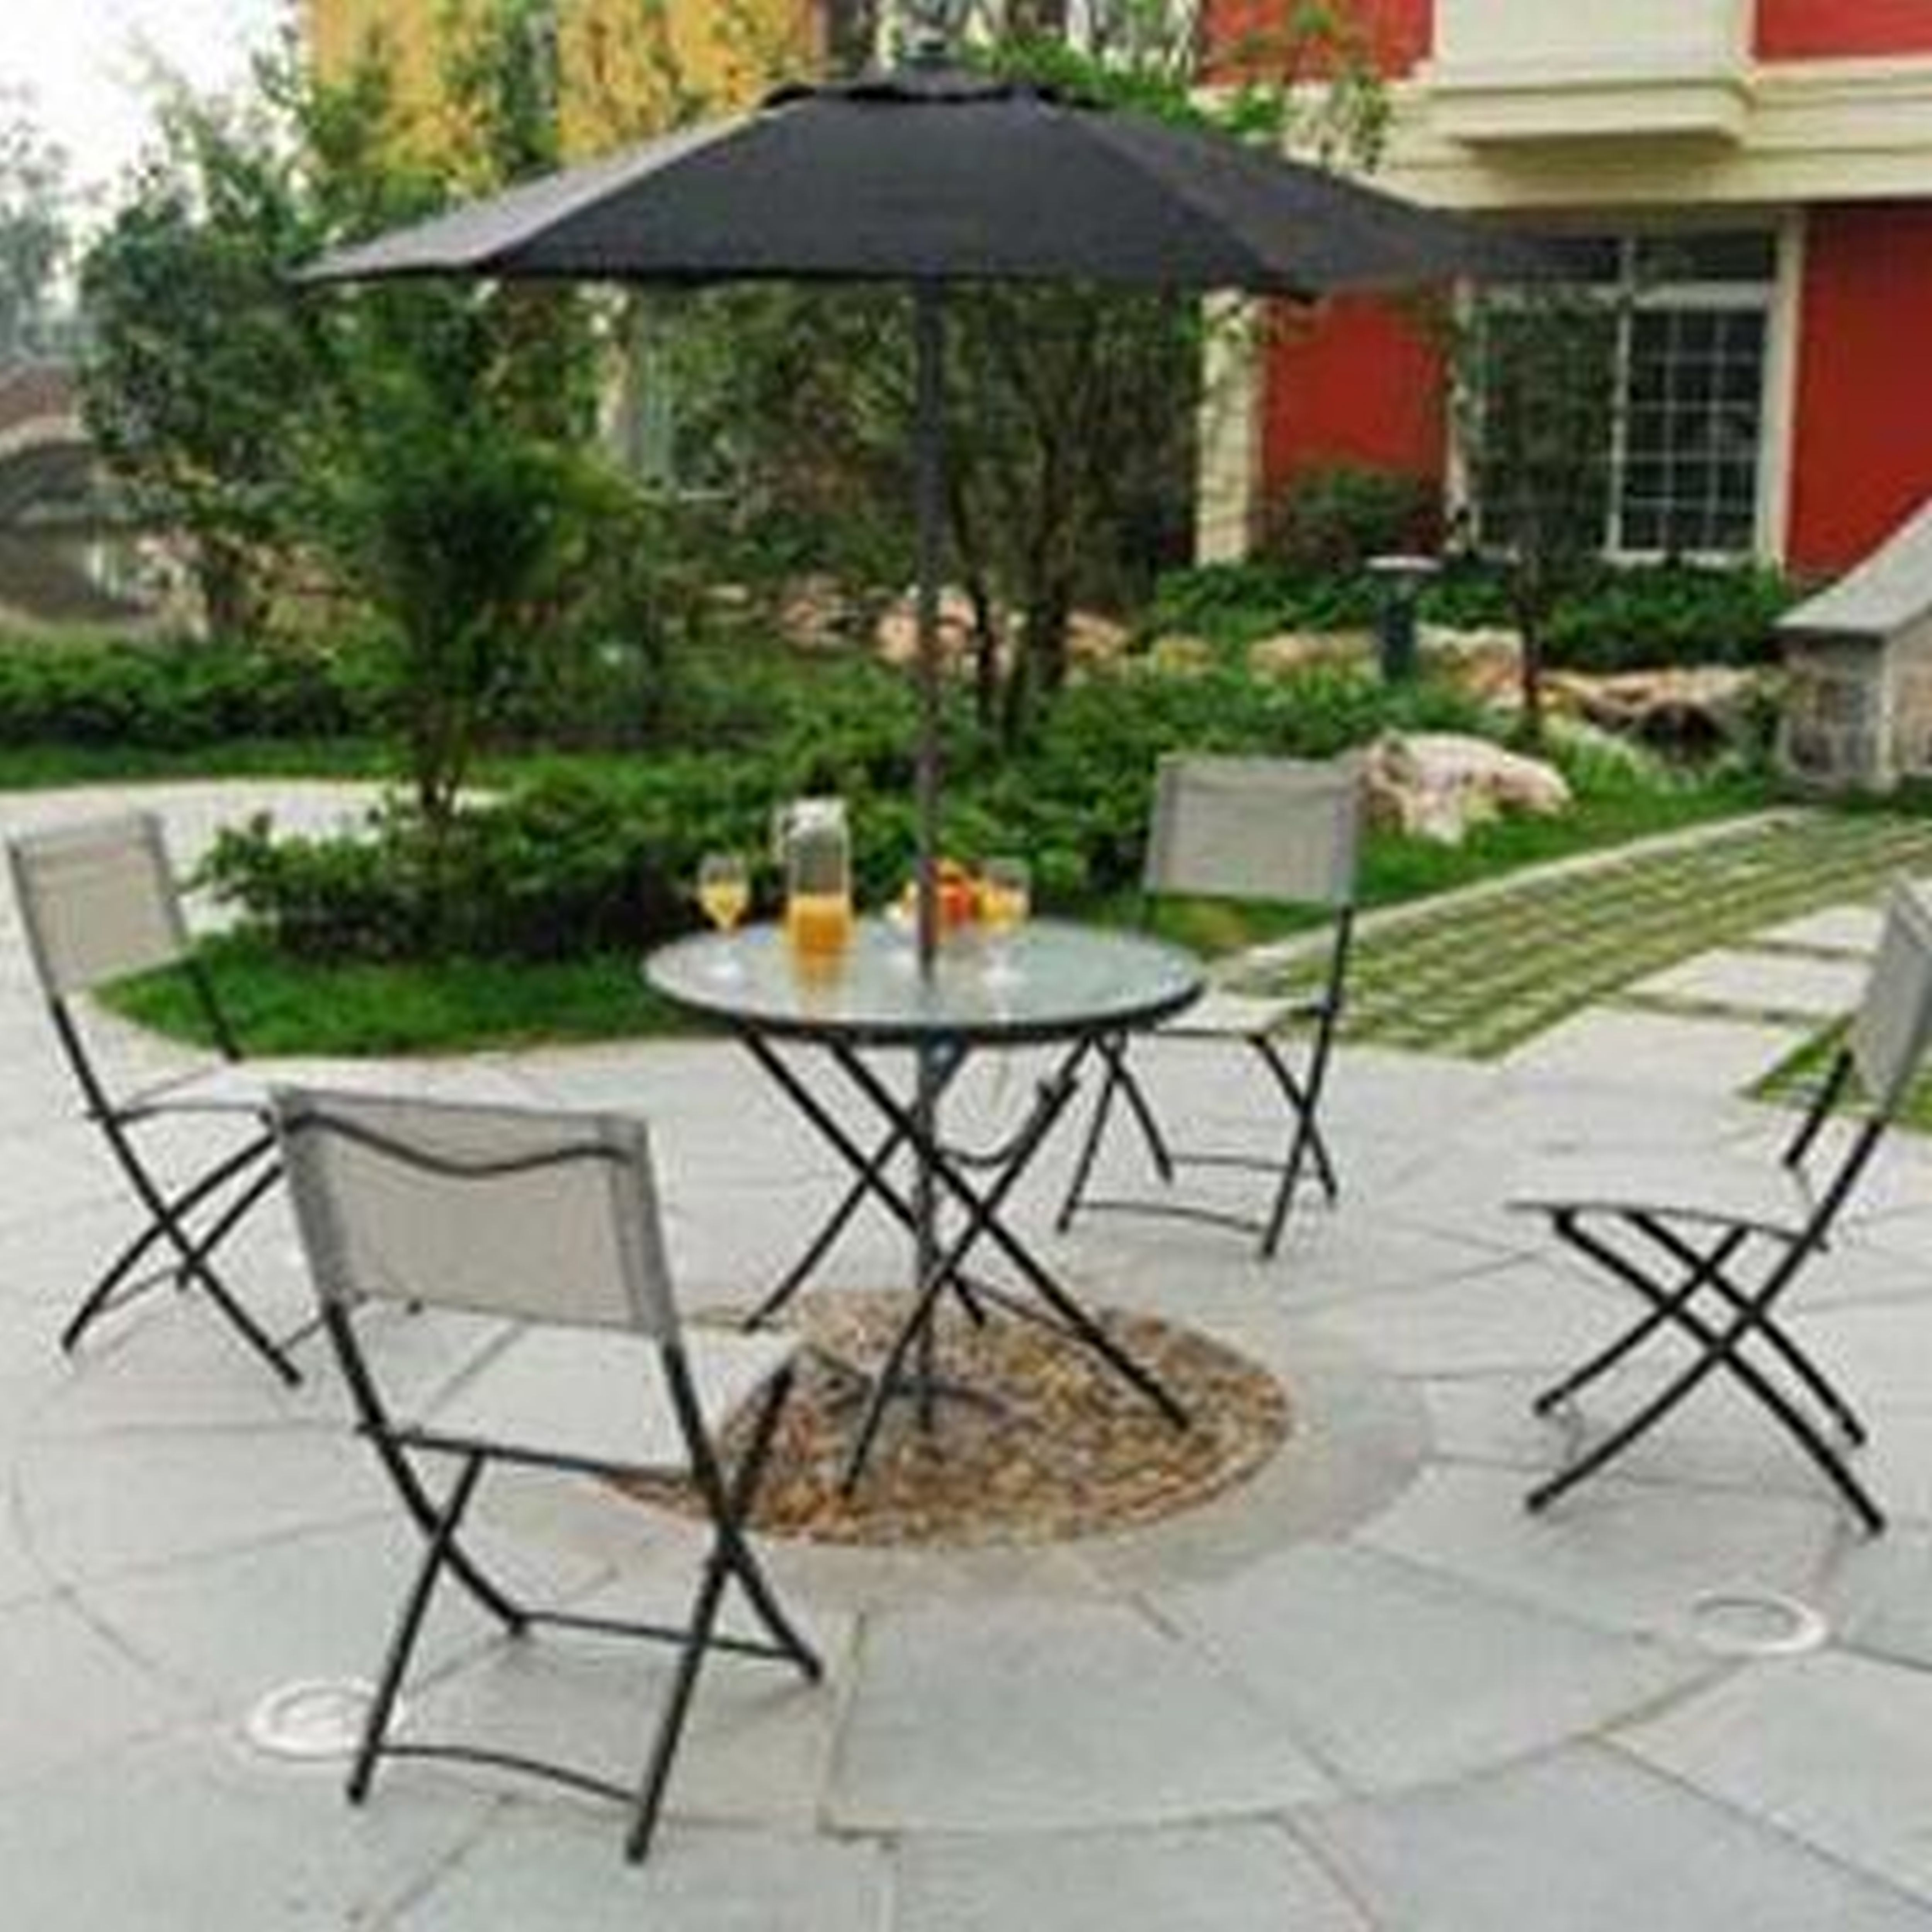 Small Scale Outdoor Patio Furniture Part 4